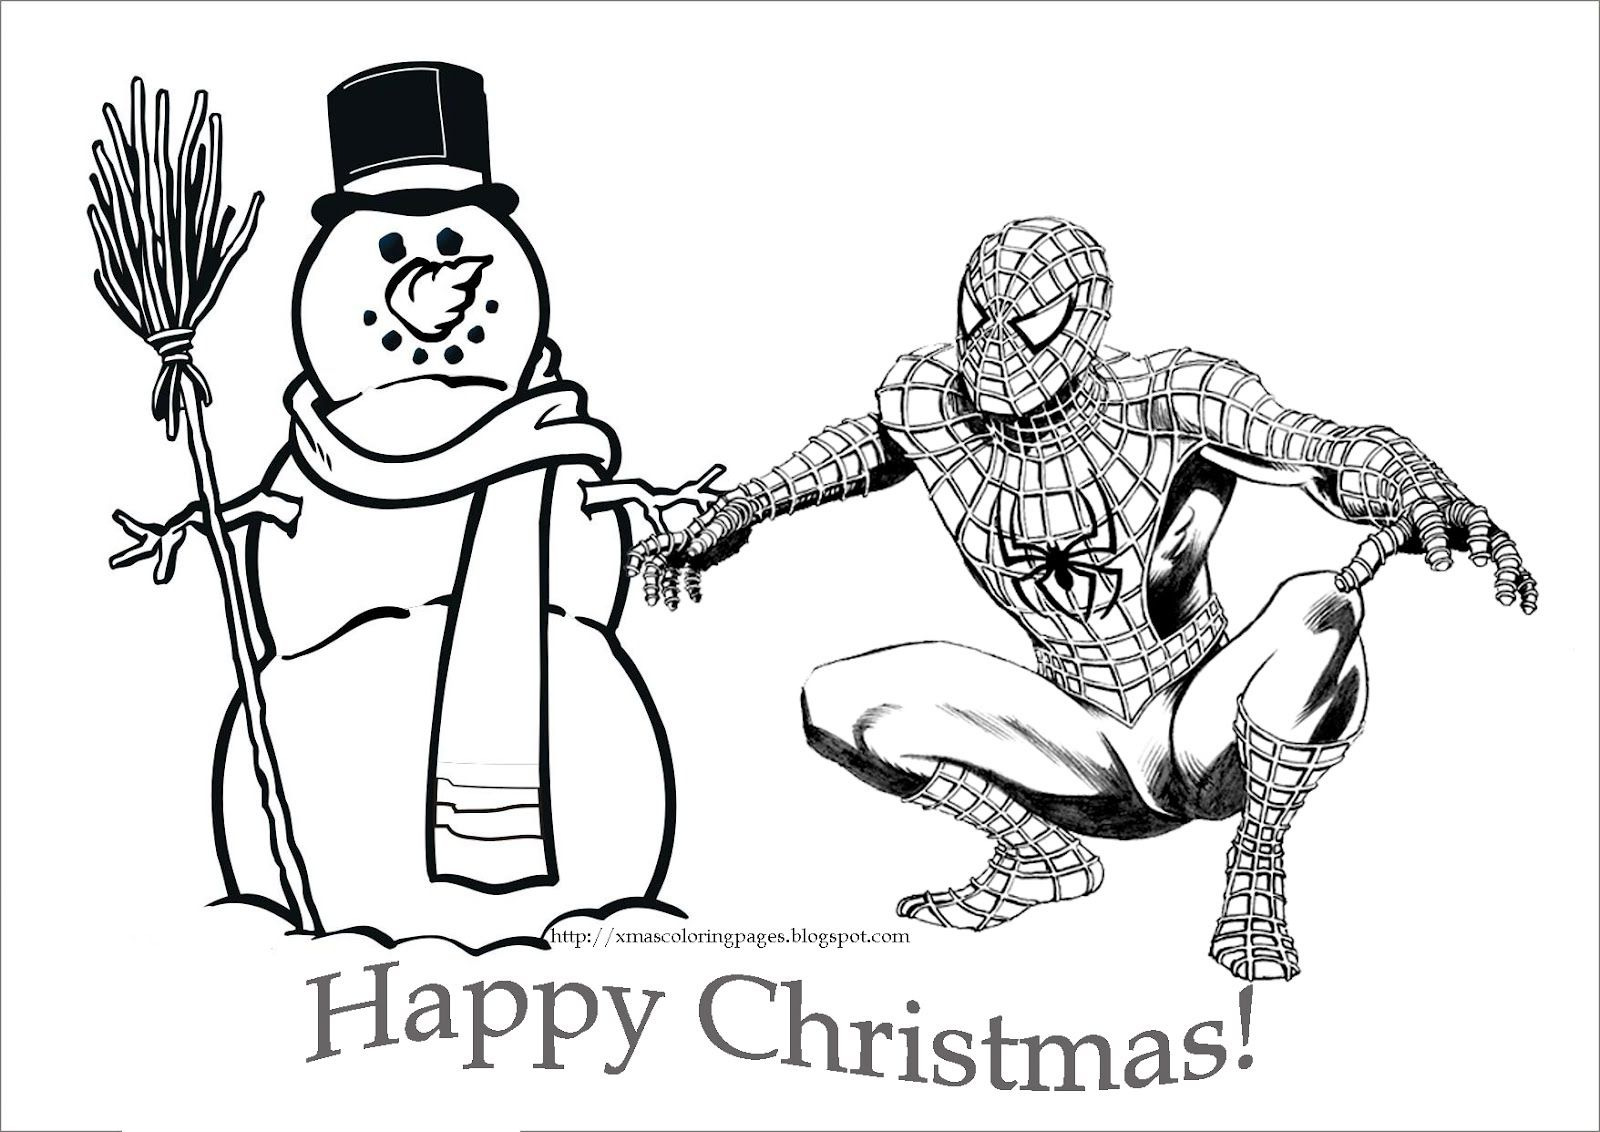 Spiderman Christmas Coloring Page Spiderman Coloring Kids Christmas Coloring Pages Christmas Coloring Pages